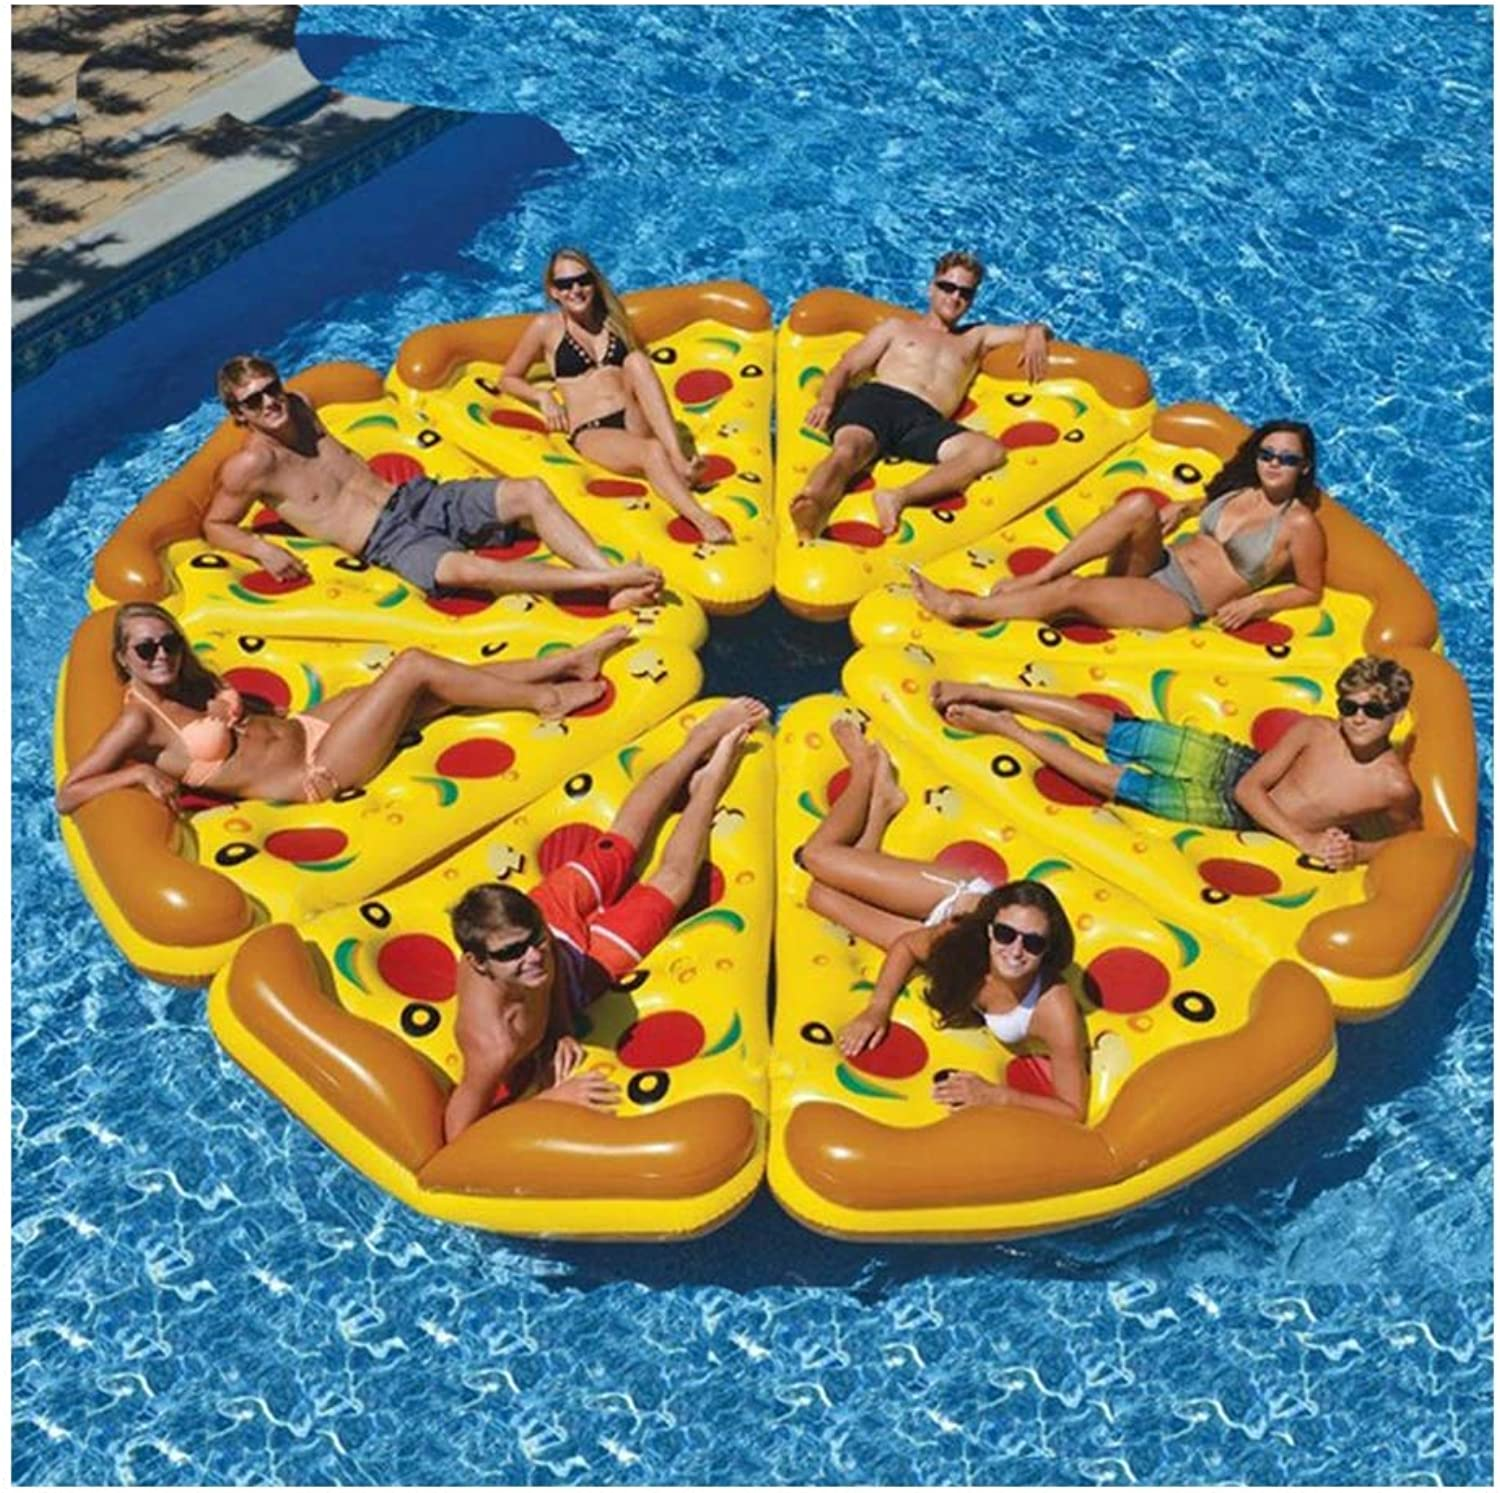 comprar mejor Kimmyer 8 Paquetes Paquetes Paquetes Enorme Inflable Pizza Slice Pool Float, Extra Grande con portavasos, Fun Pool Floaties, Swim Party Juguete, Summer Pool Raft para Swmming Pool  calidad garantizada